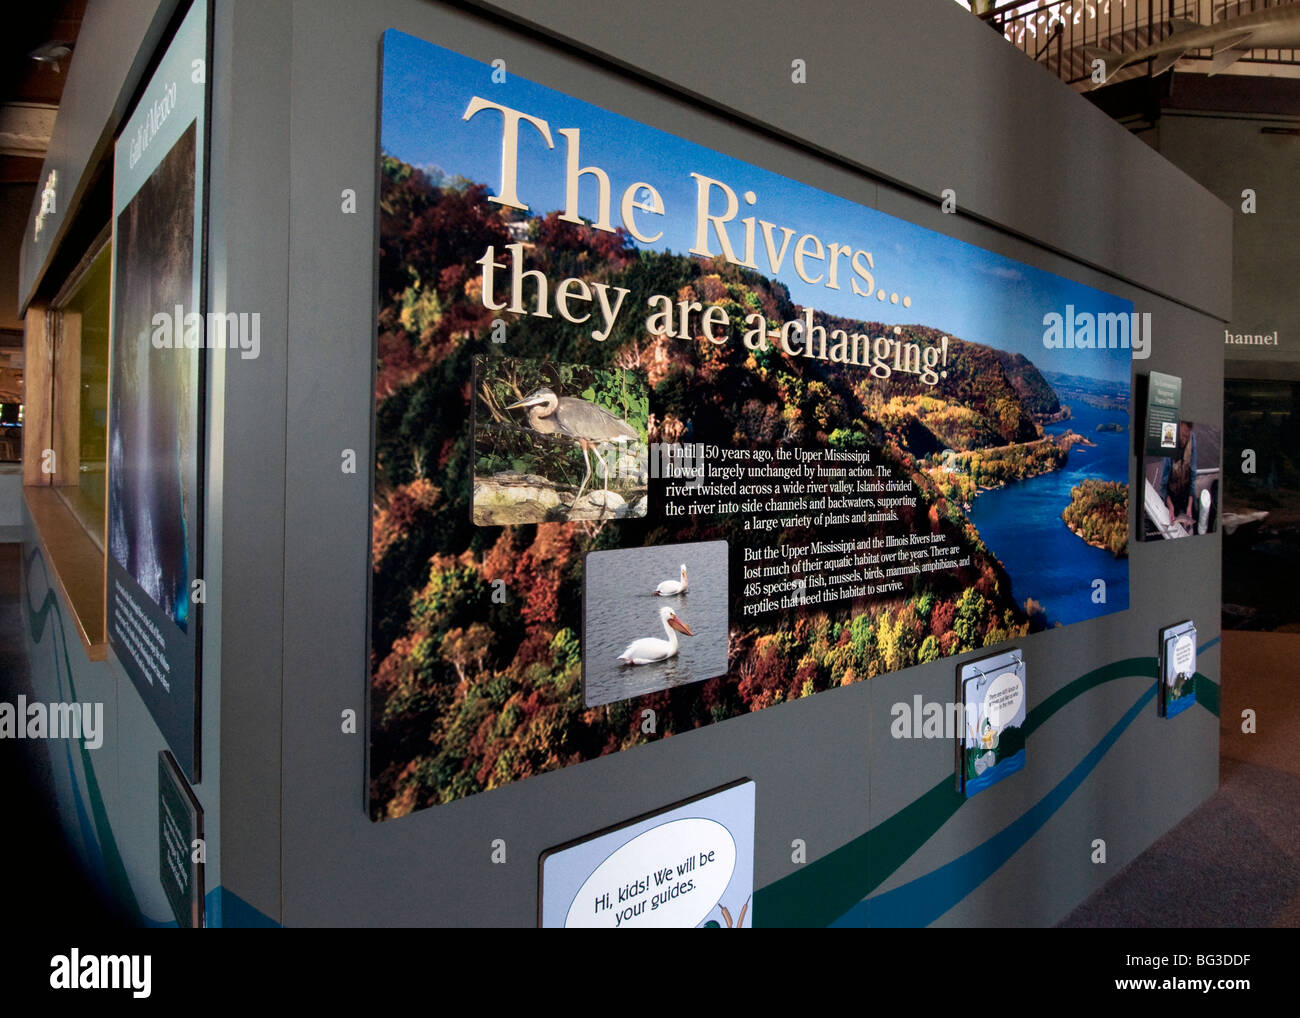 Exhibit at the National Mississippi River Museum and Aquarium in Dubuque, Iowa - Stock Image